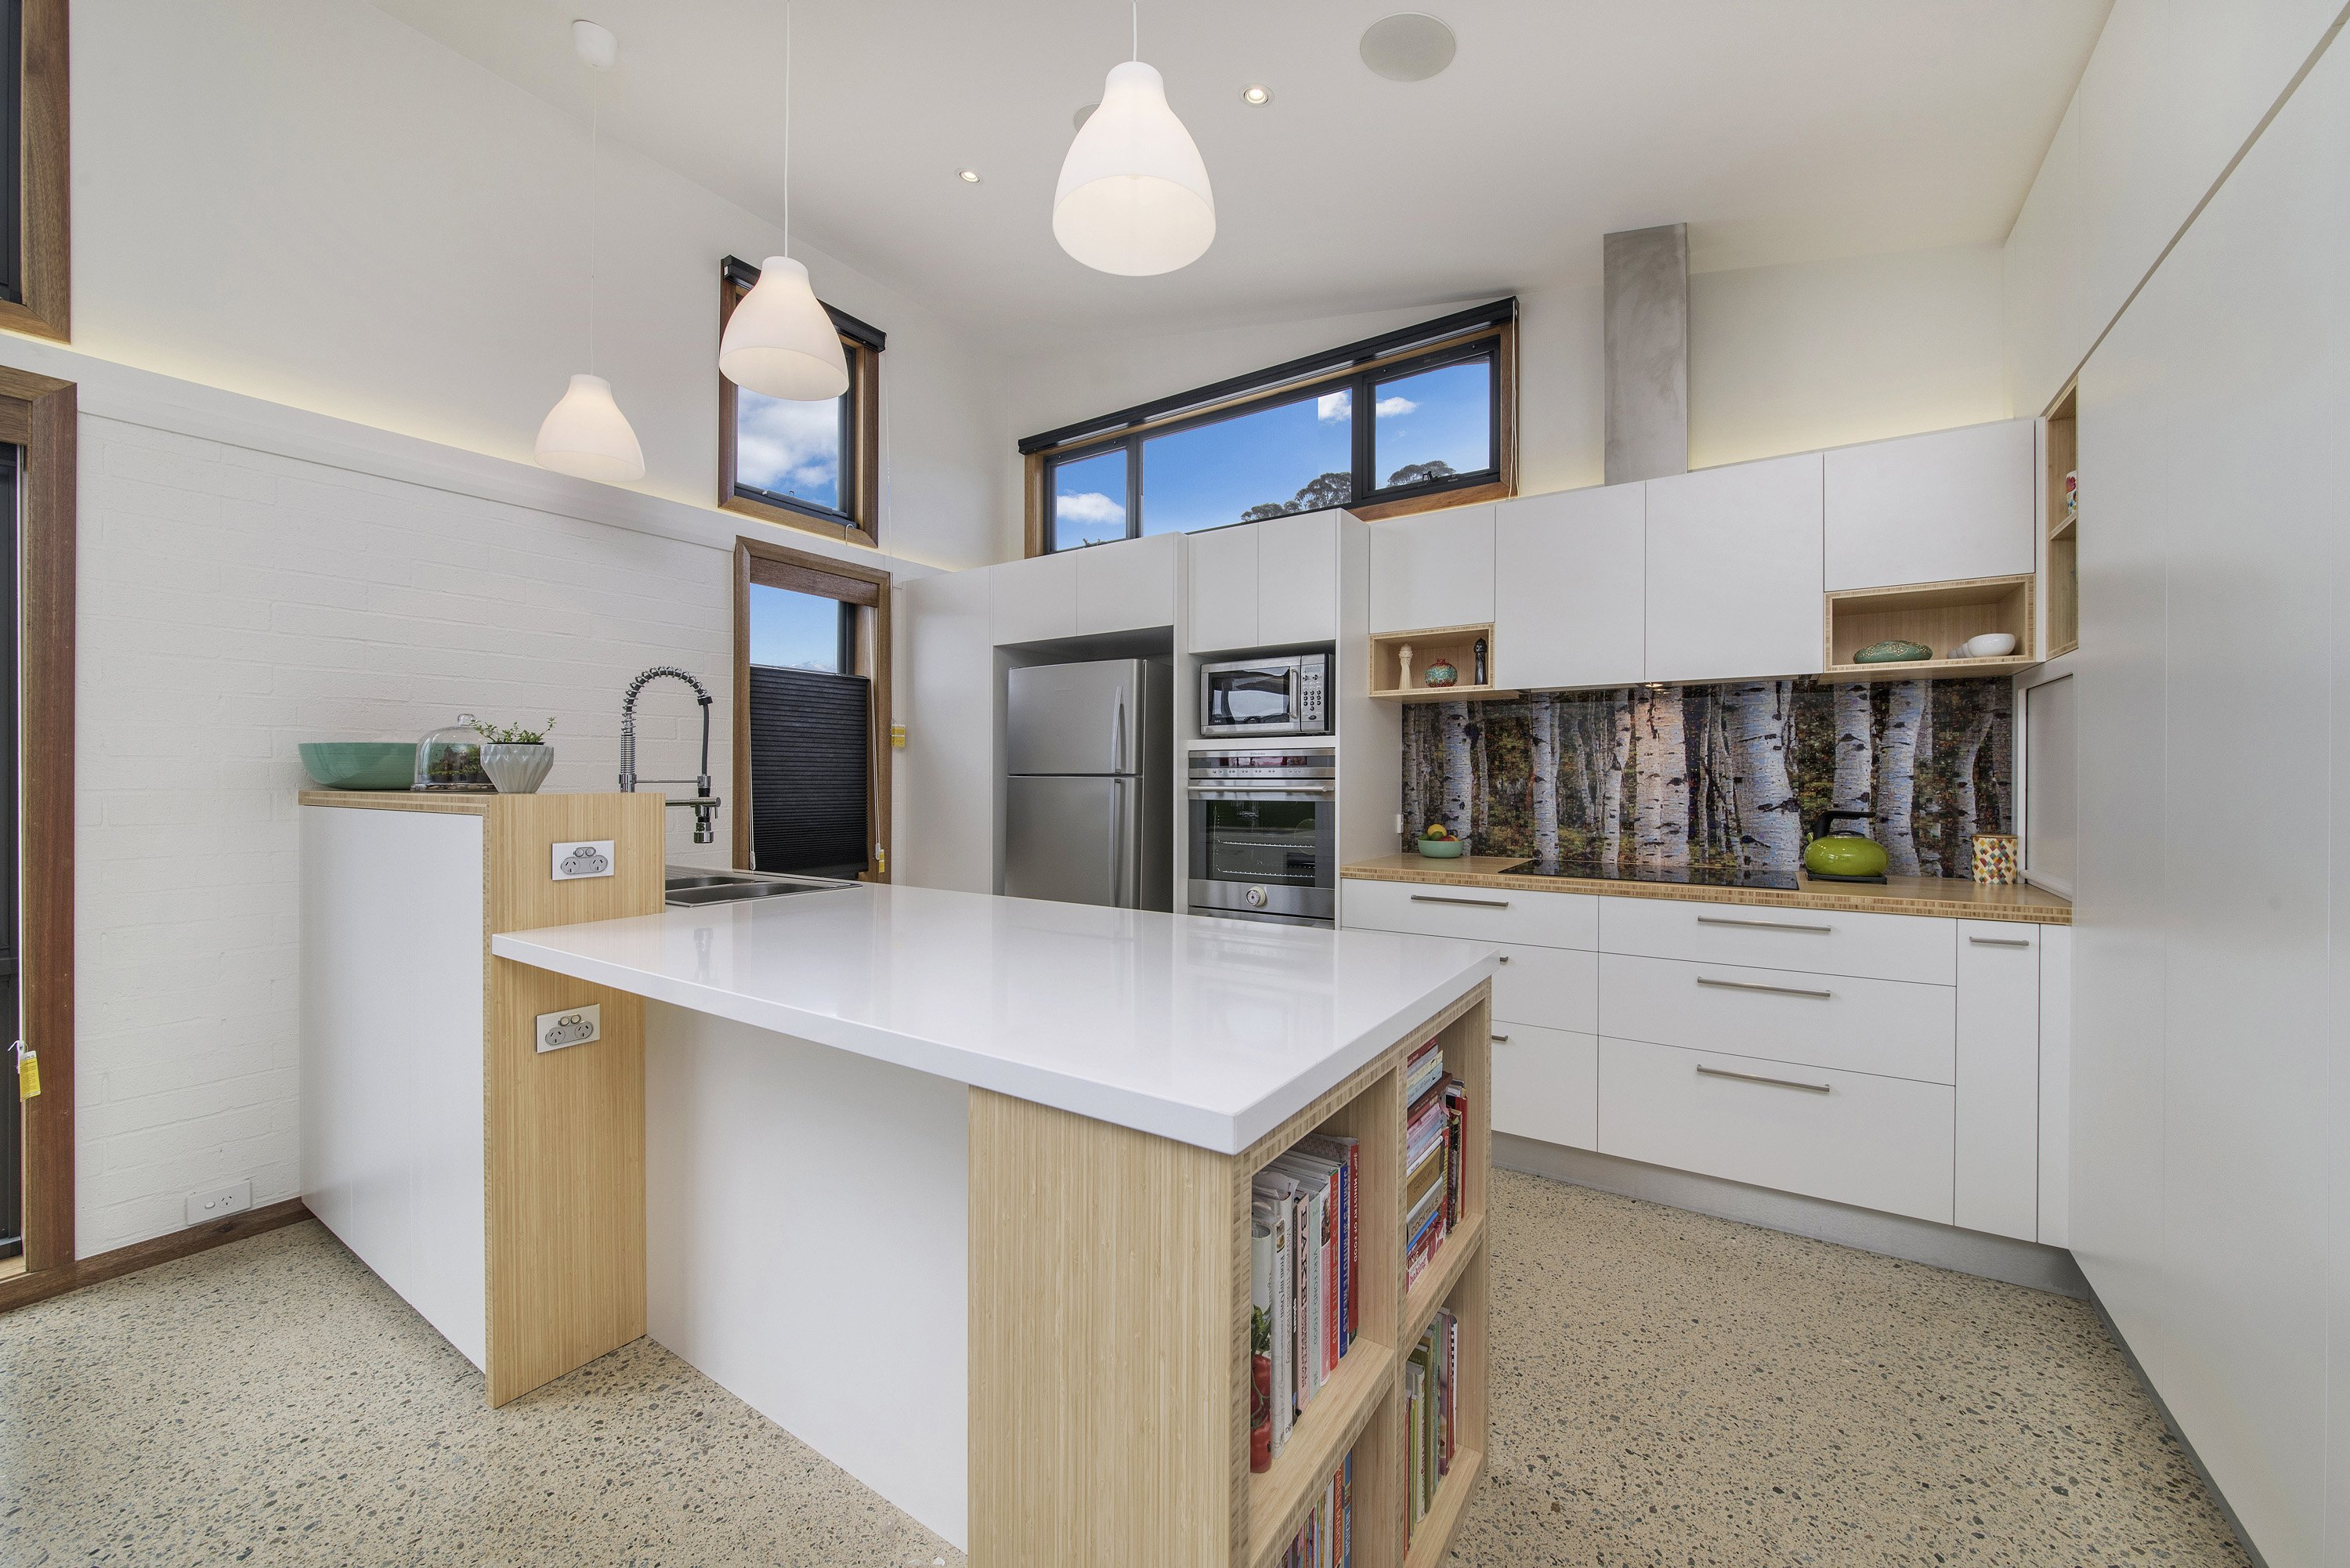 Uncategorized Kitchen Design Canberra kitchen designs canberra act simplicity kitchens innovative across canberra